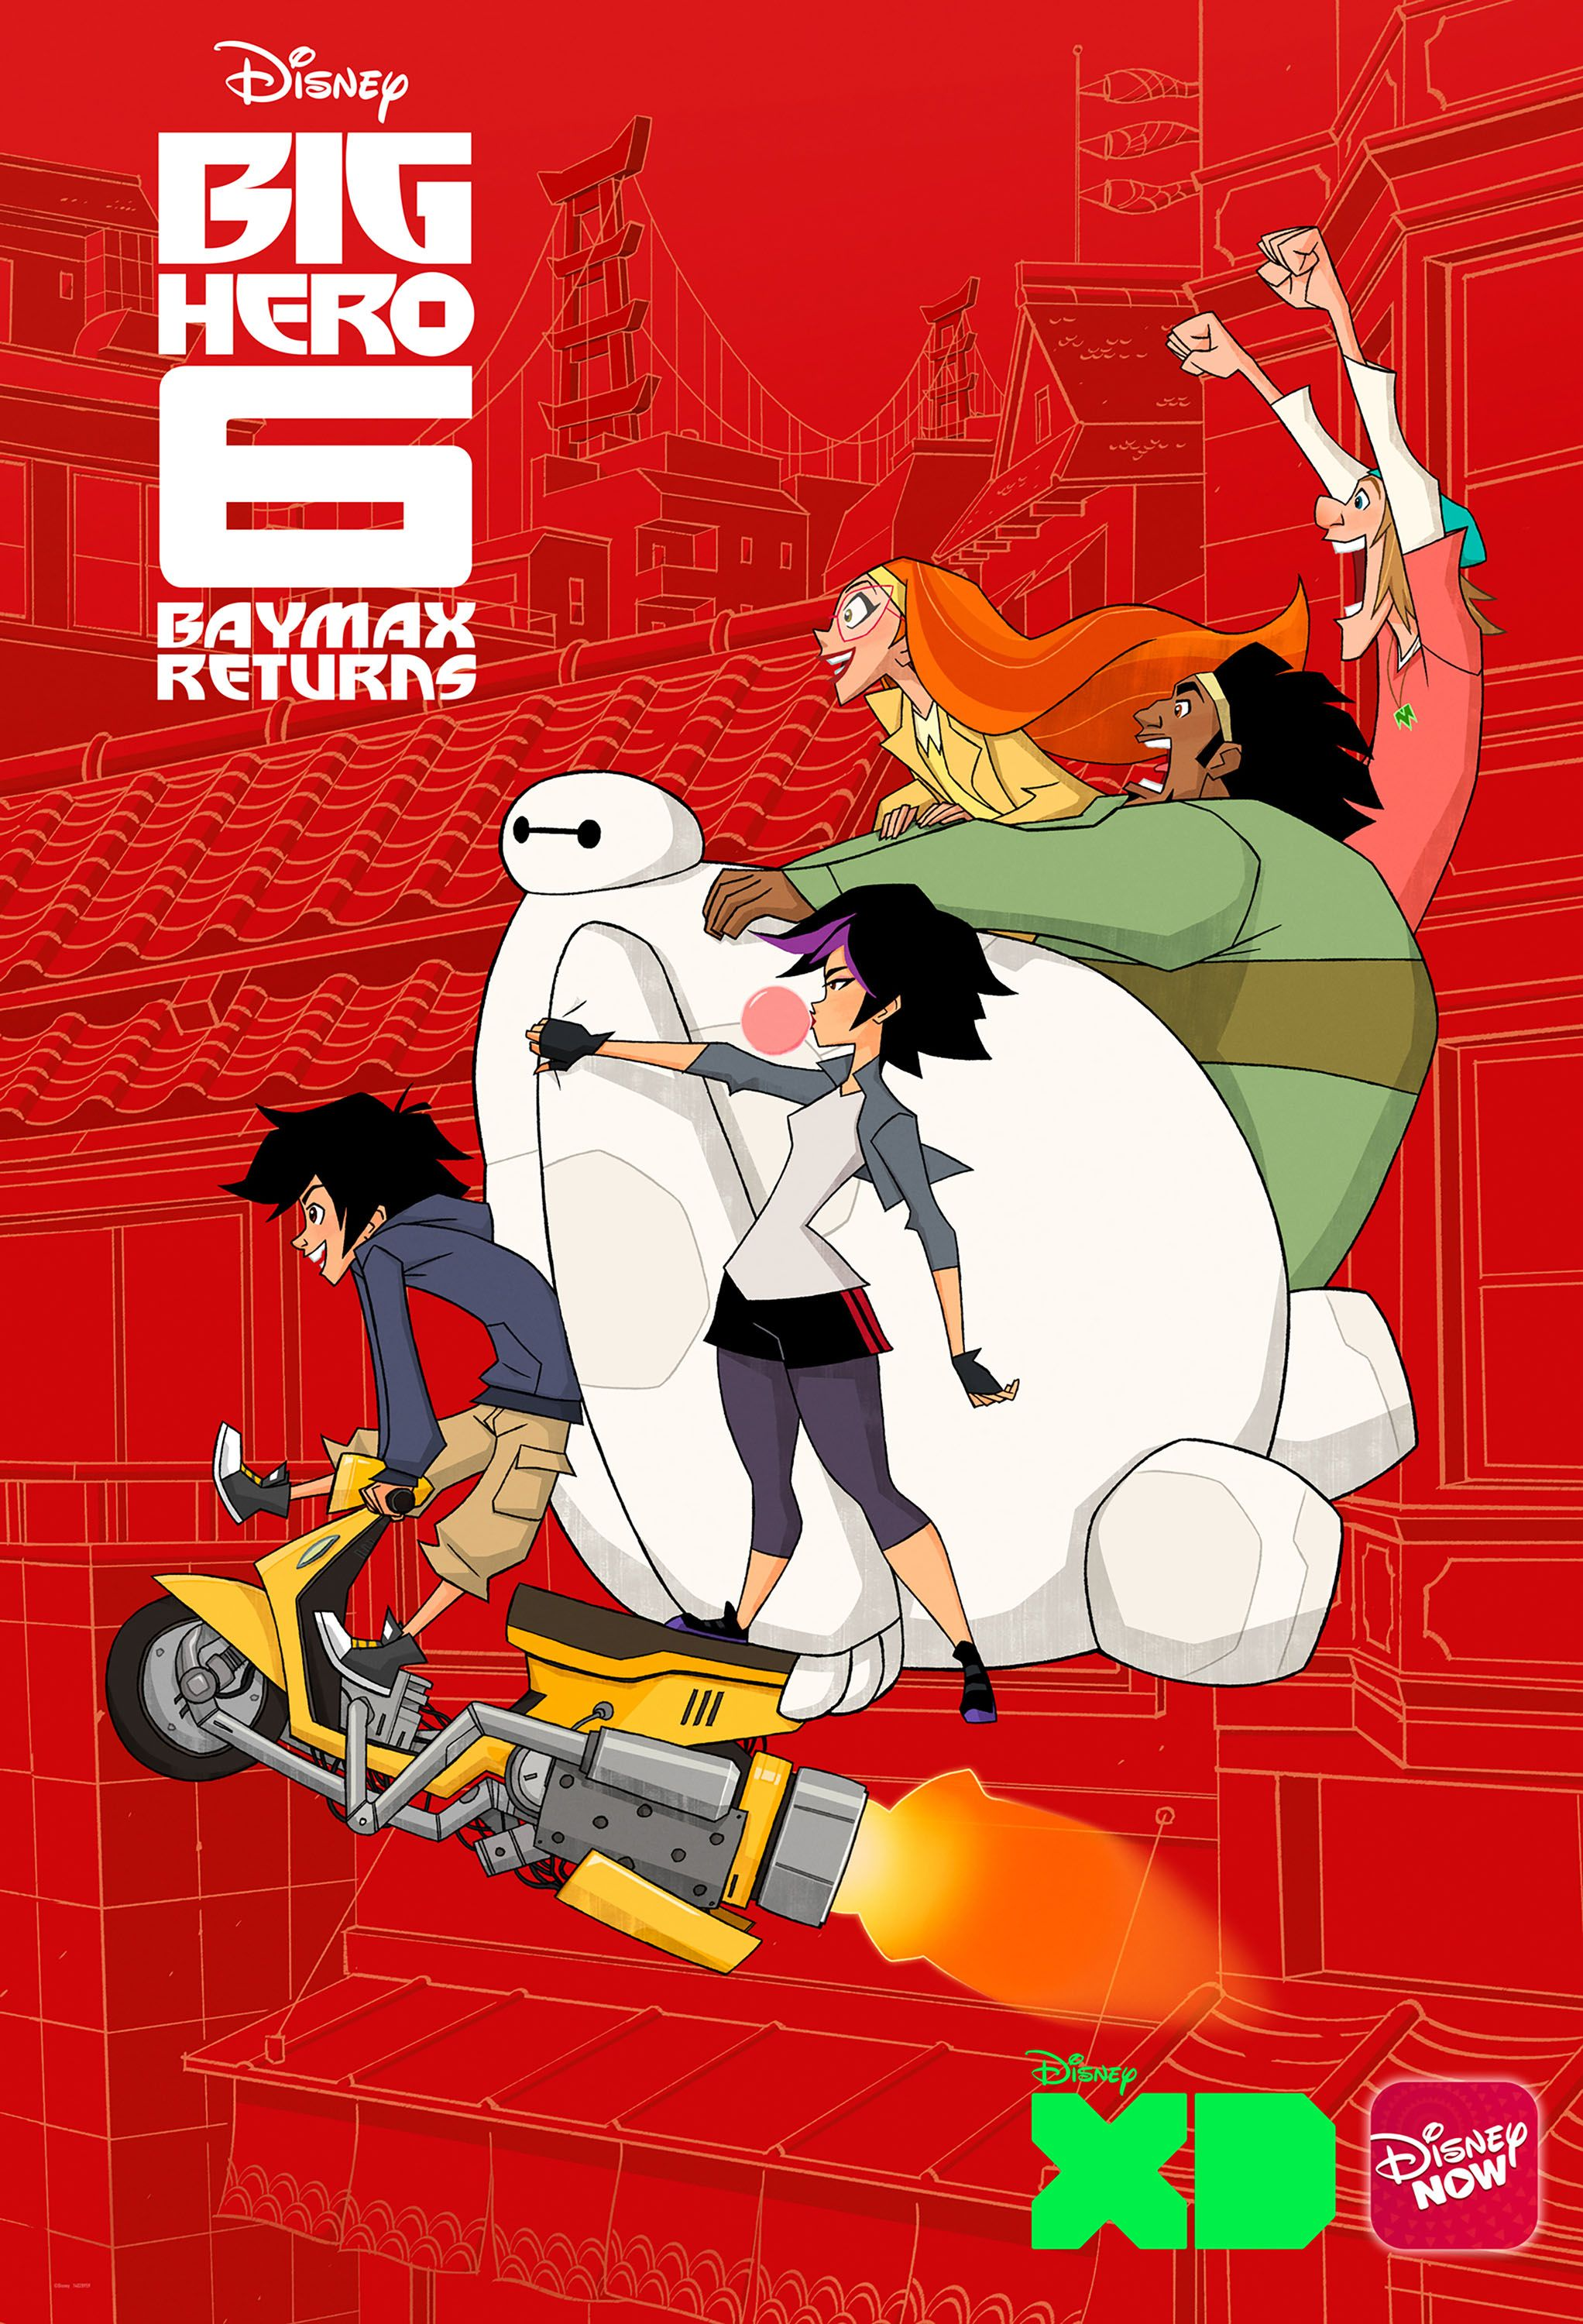 Big Hero 6 Baymax Returns Review: Big on Humor, Short on ...